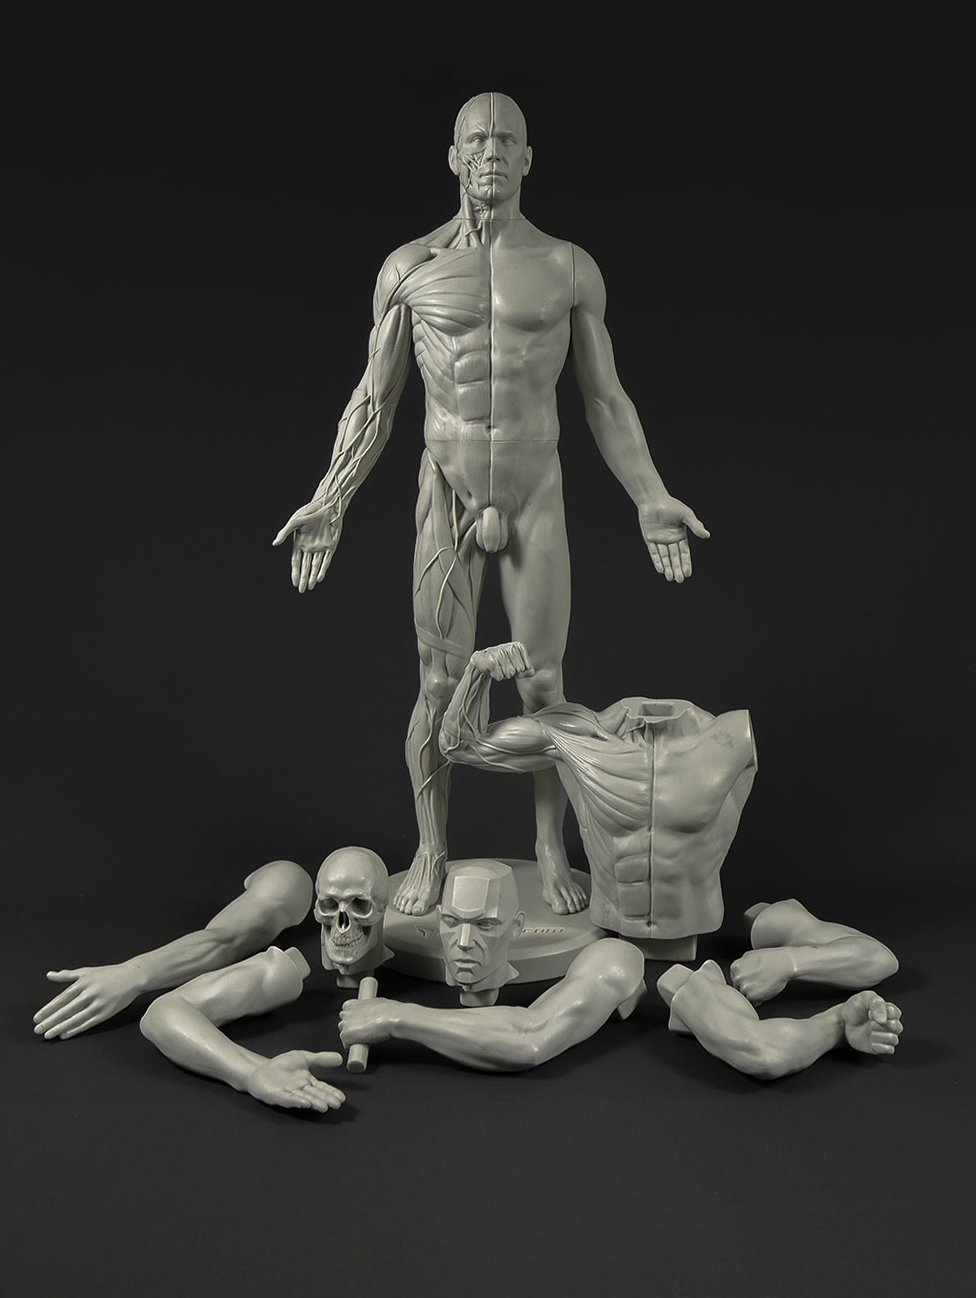 Male Adaptable Anatomy Figure: 13.4-inch Anatomical Reference for Artists (Grey)